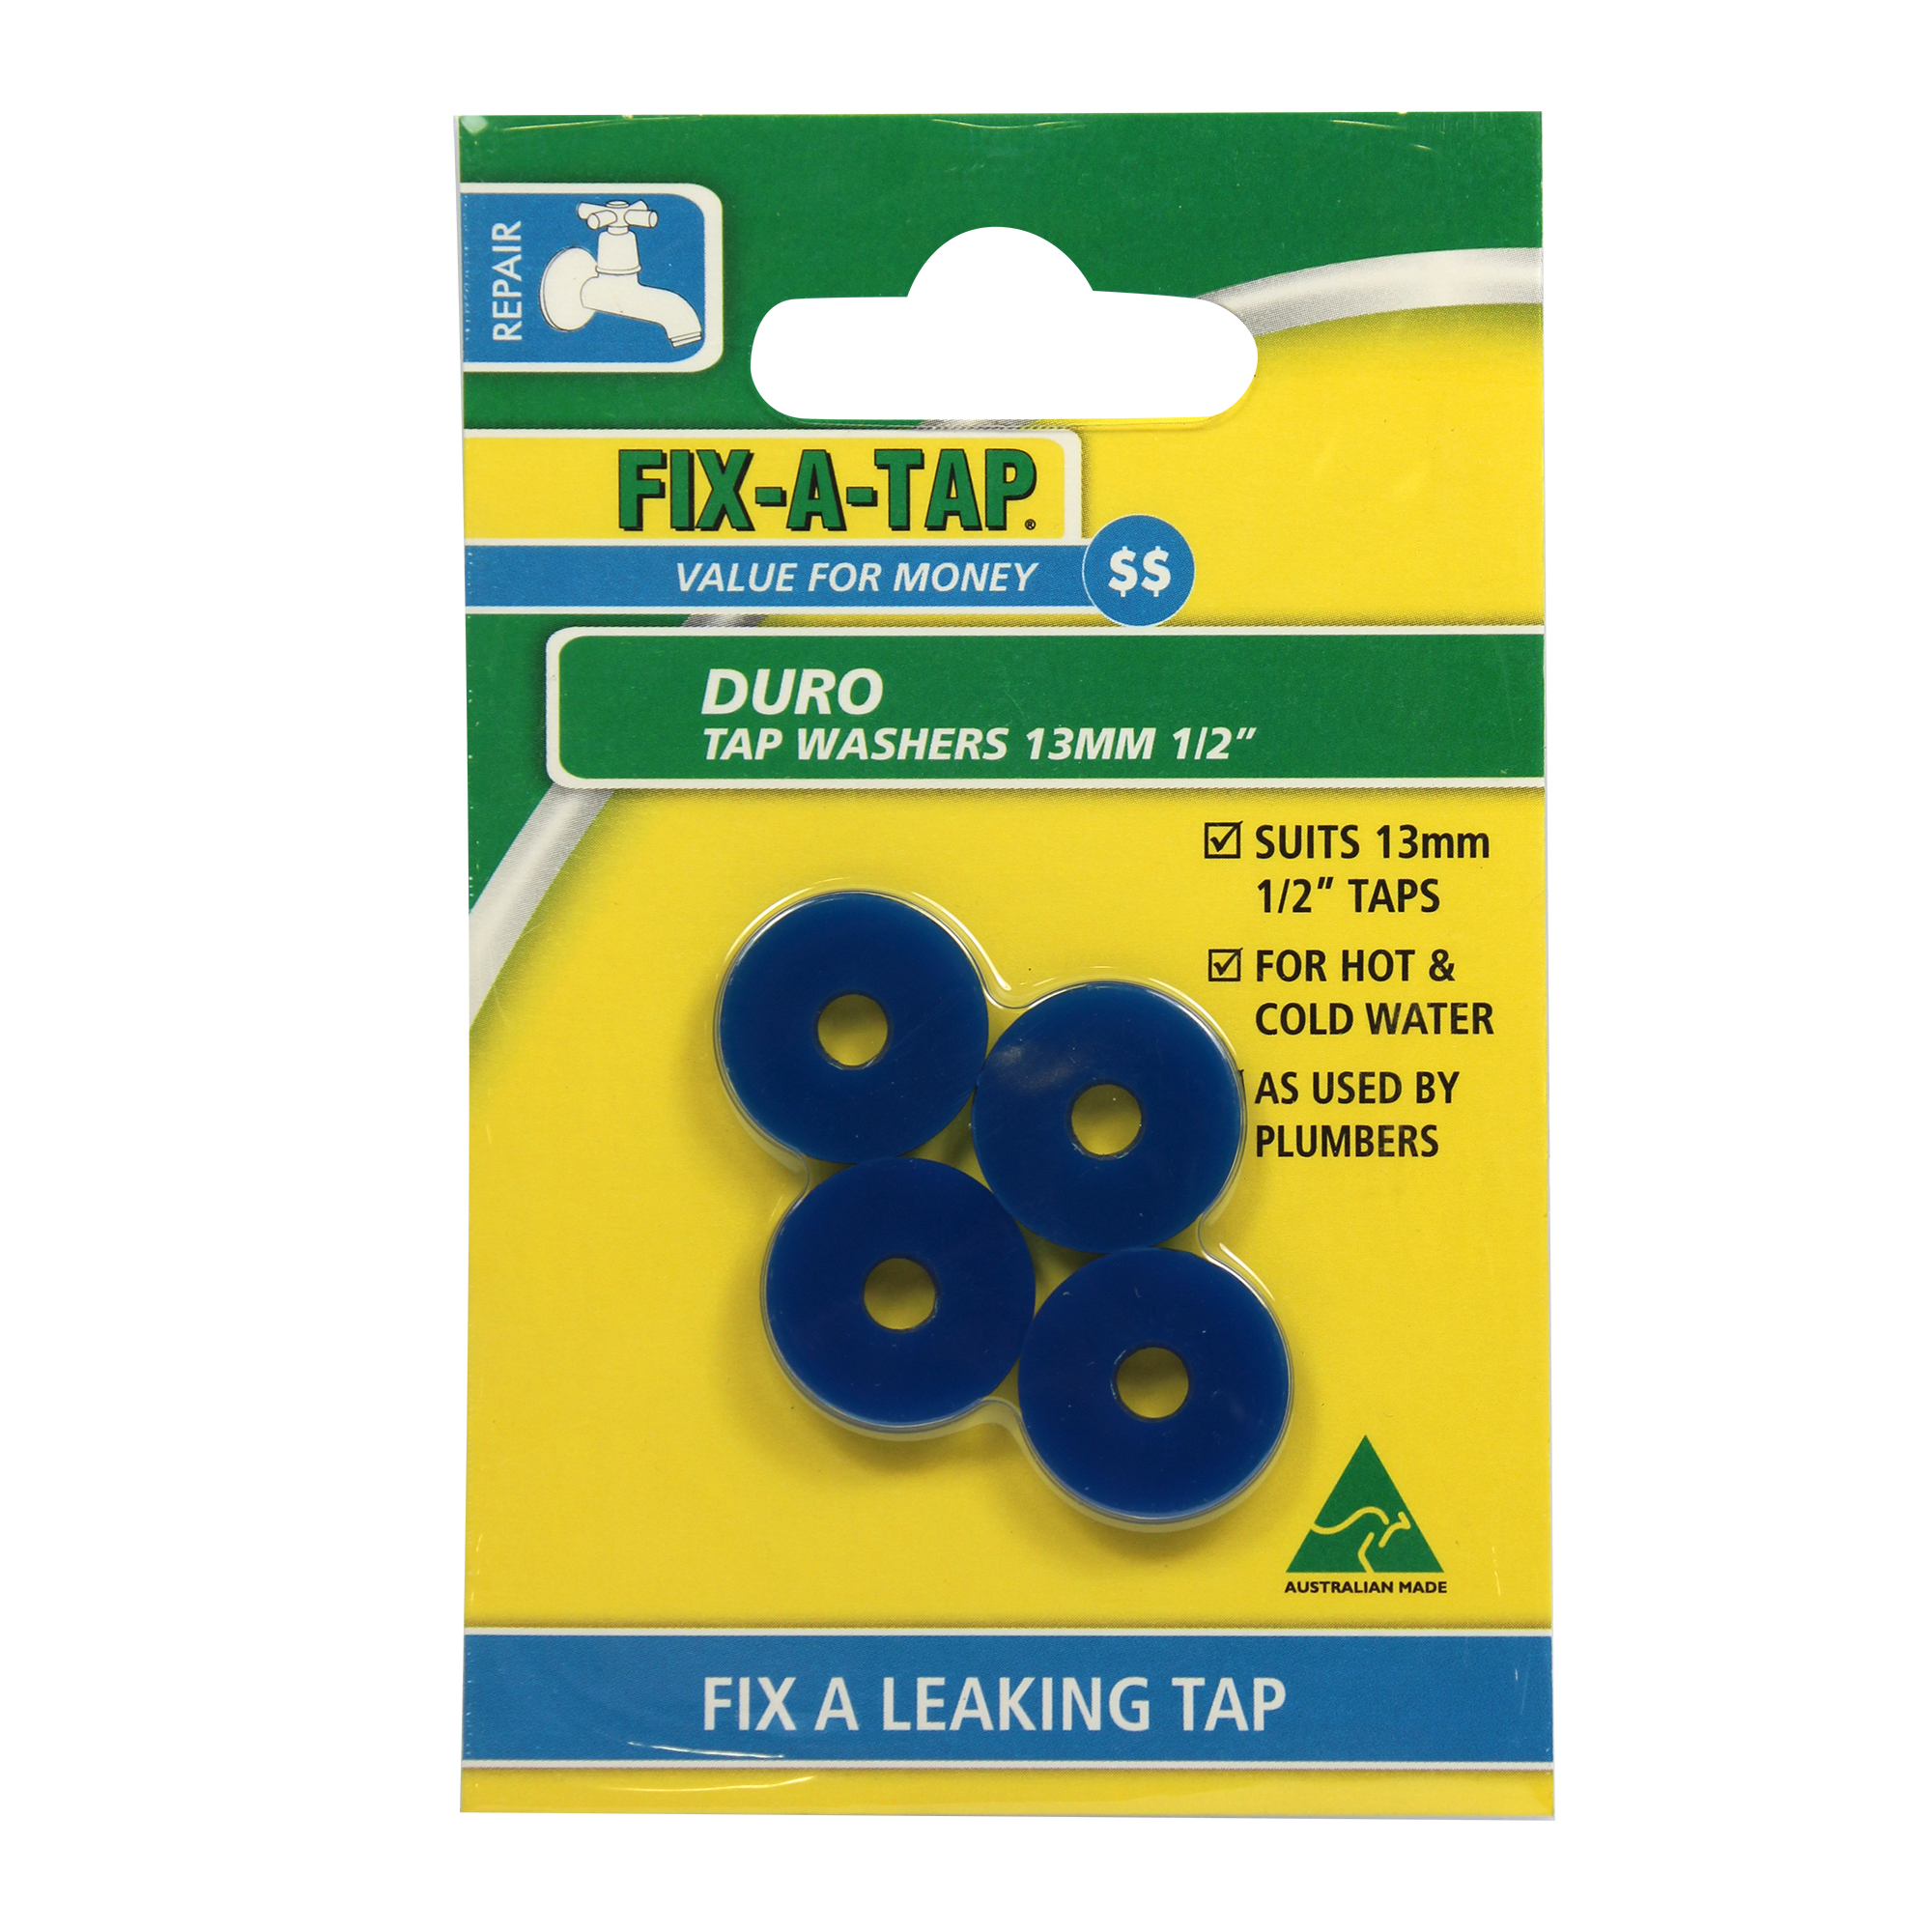 Duro Tap Washers - Tap Washers - FIX-A-TAP